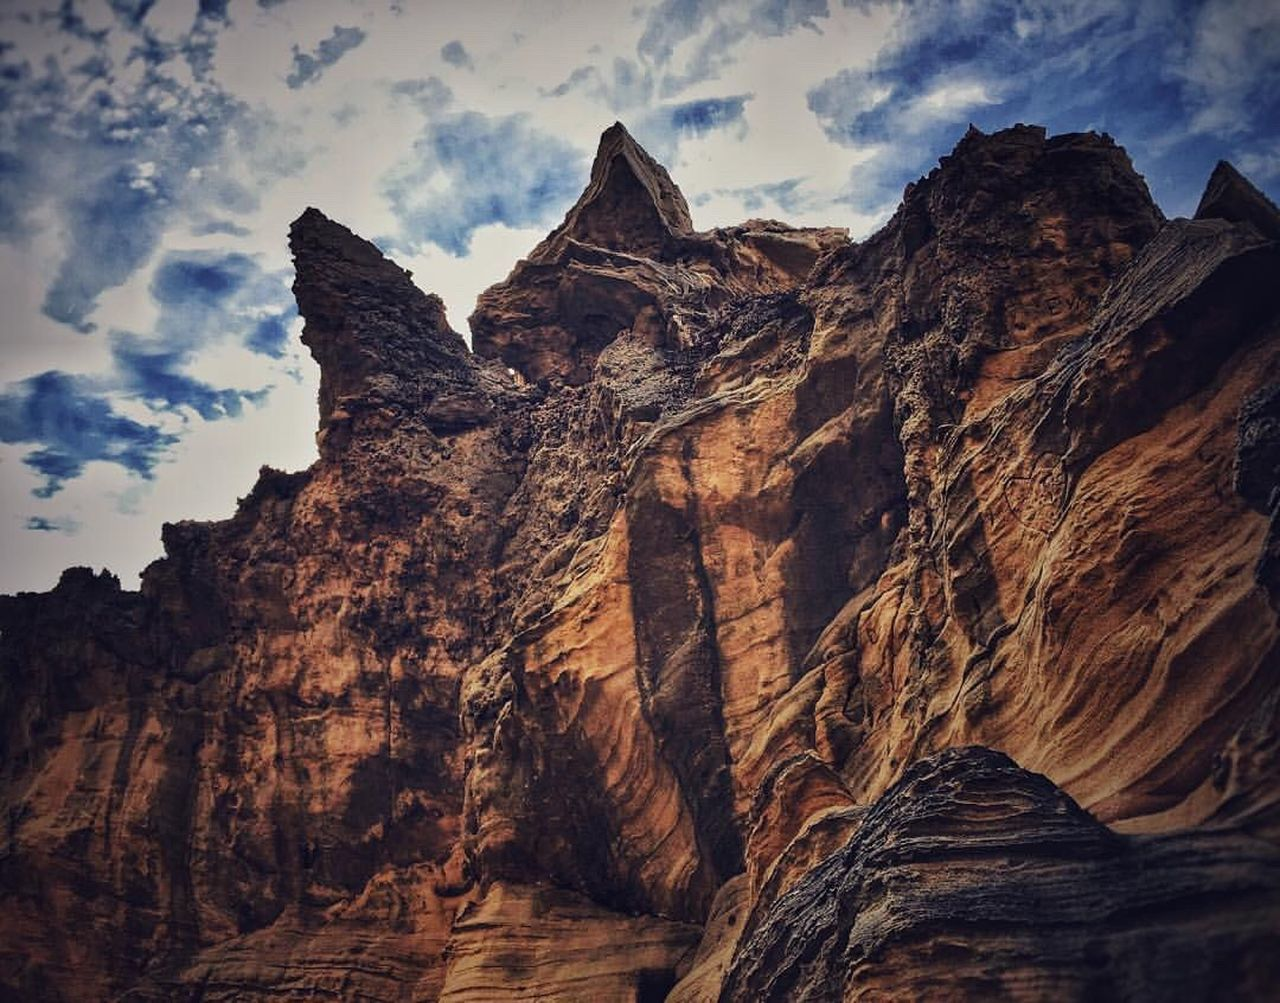 mountain, rock formation, sky, nature, no people, physical geography, beauty in nature, cliff, day, scenery, landscape, scenics, peak, outdoors, height